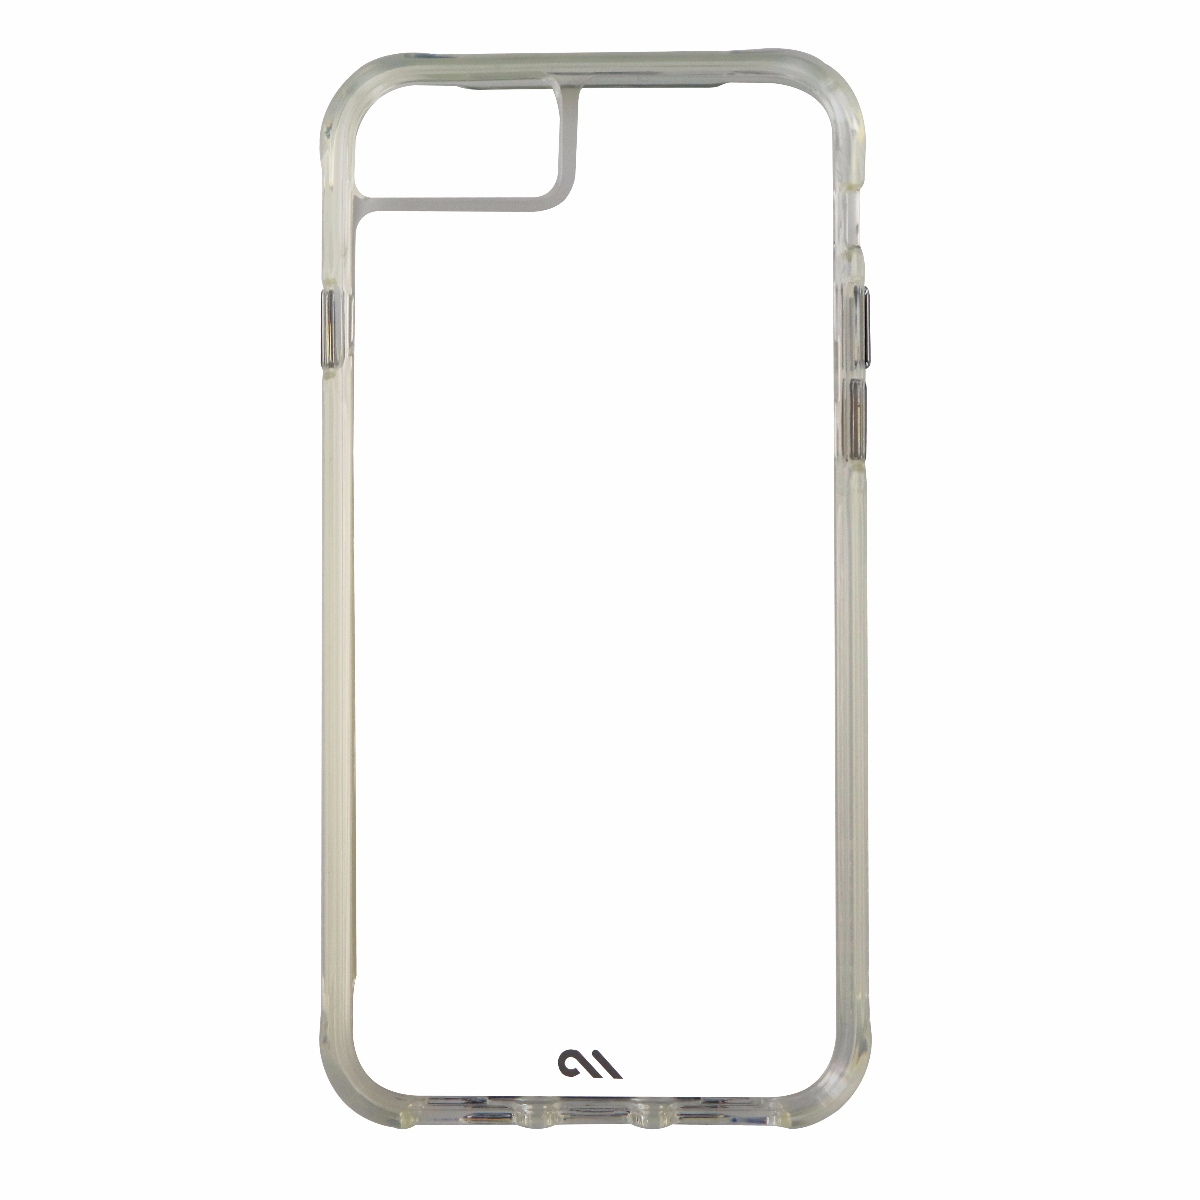 Case-Mate Tough Clear Series Protective Case Cover for iPhone 8 7 - Clear